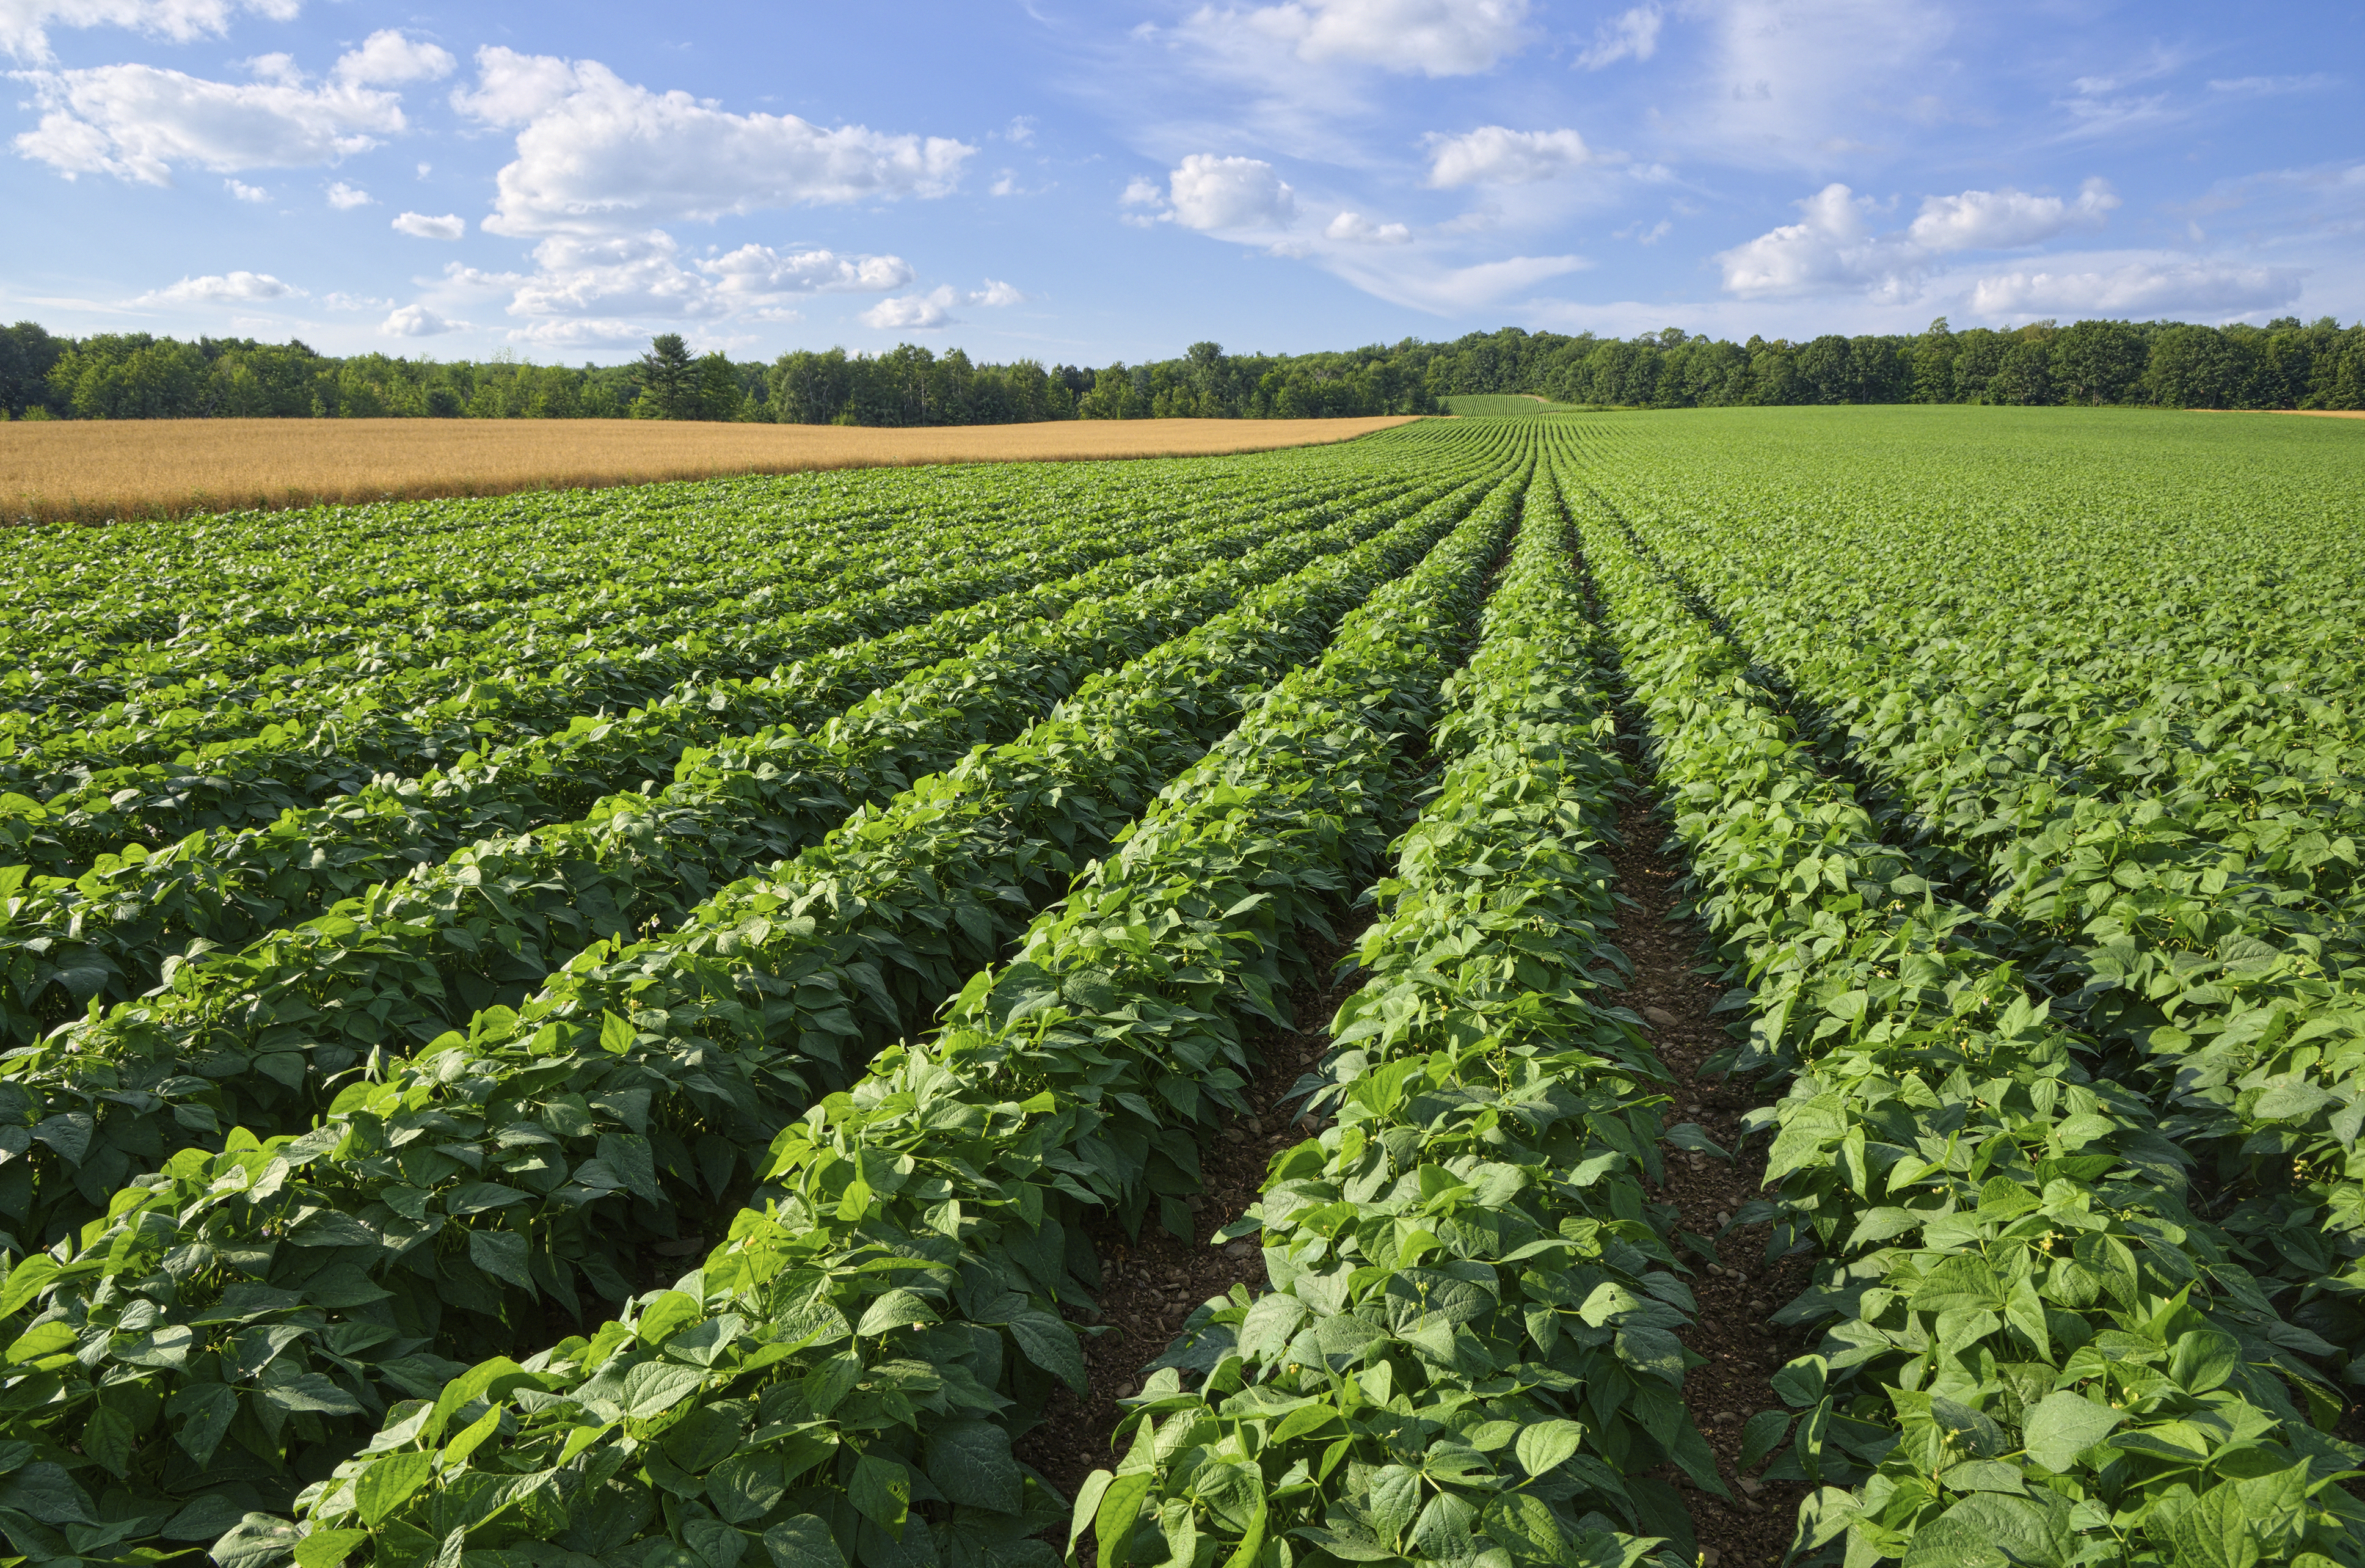 Image of potato field